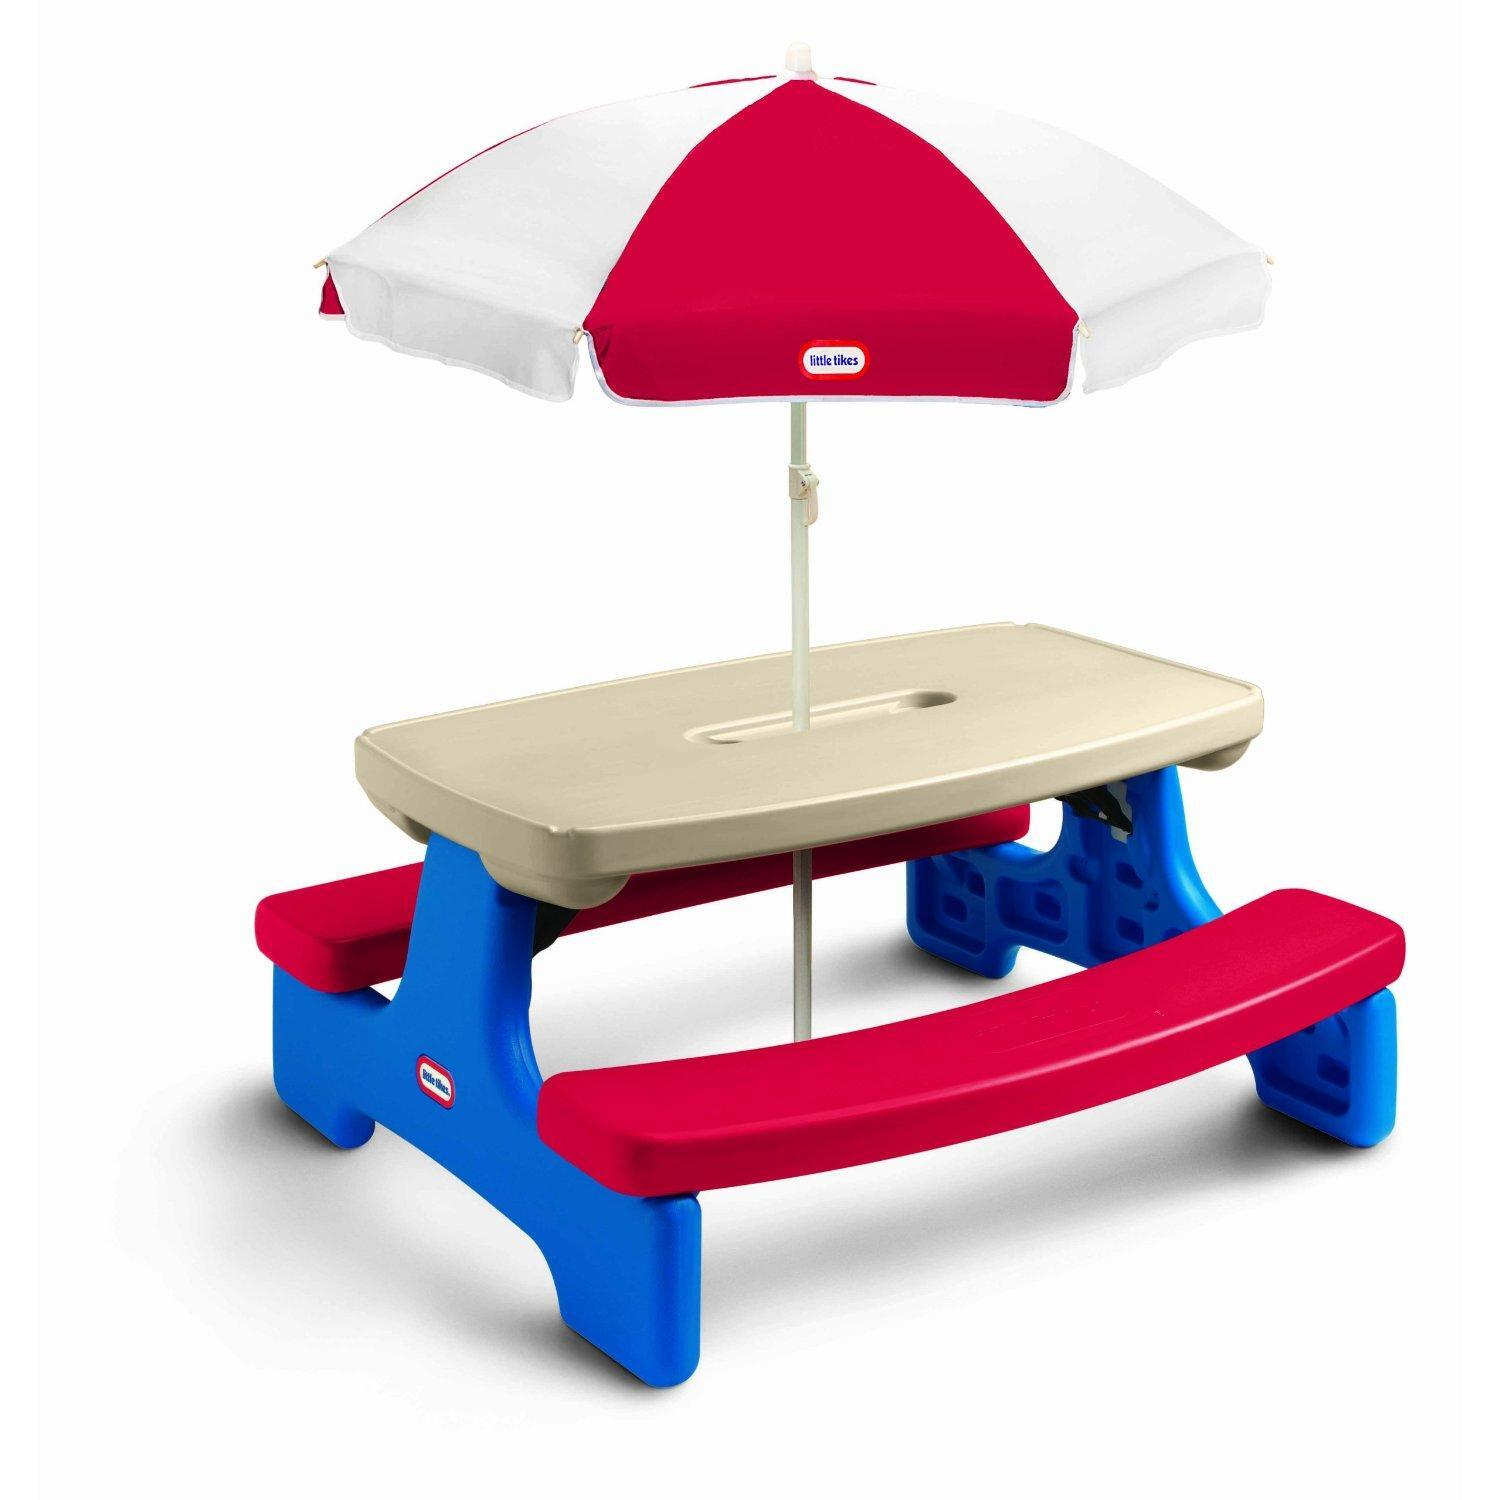 Umbrella For Picnic Table : Little Tikes Easy Store™ Picnic Table with Umbrella by OJ Commerce ...